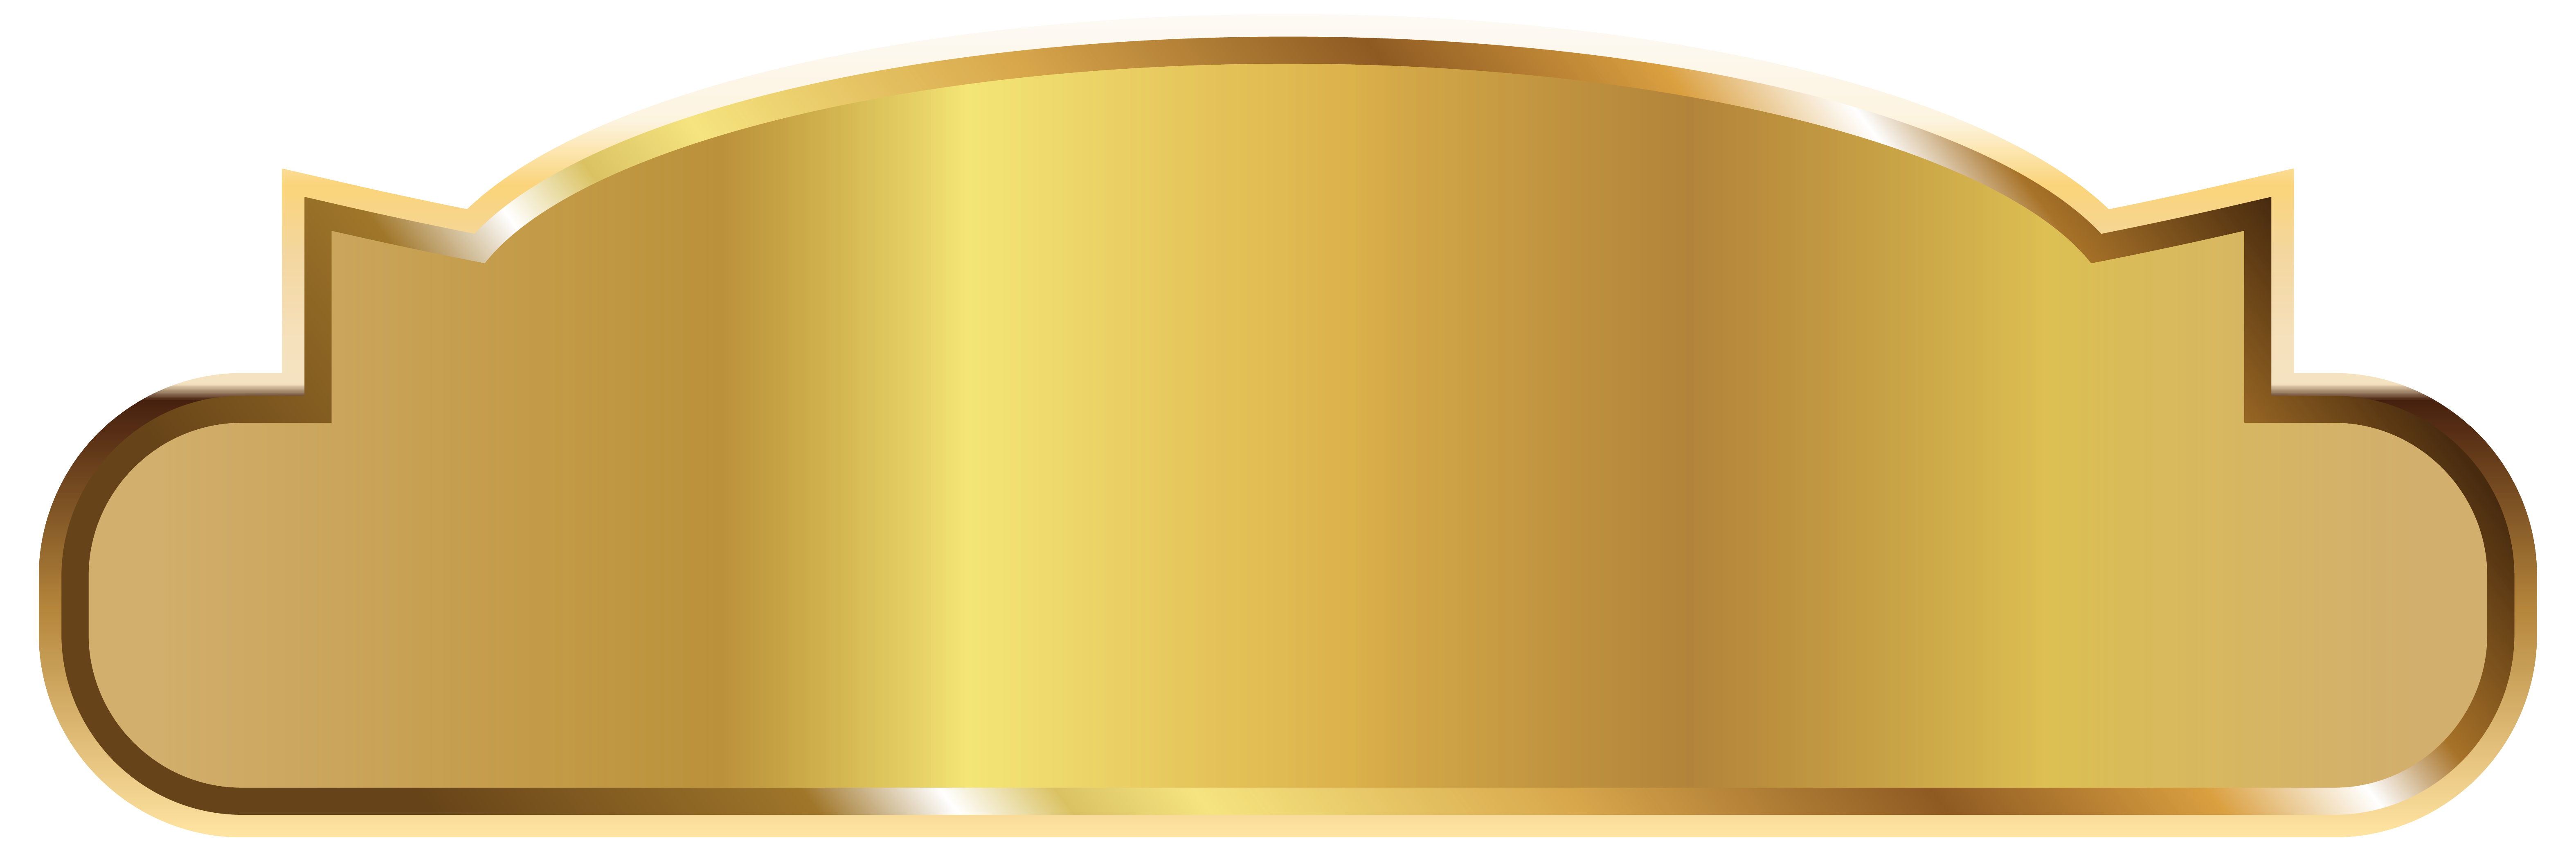 Gold Label Template Png Clipart Image Gallery Yopriceville High Quality Images And Transparent Png Free Clipart Gold Labels Label Templates Clip Art